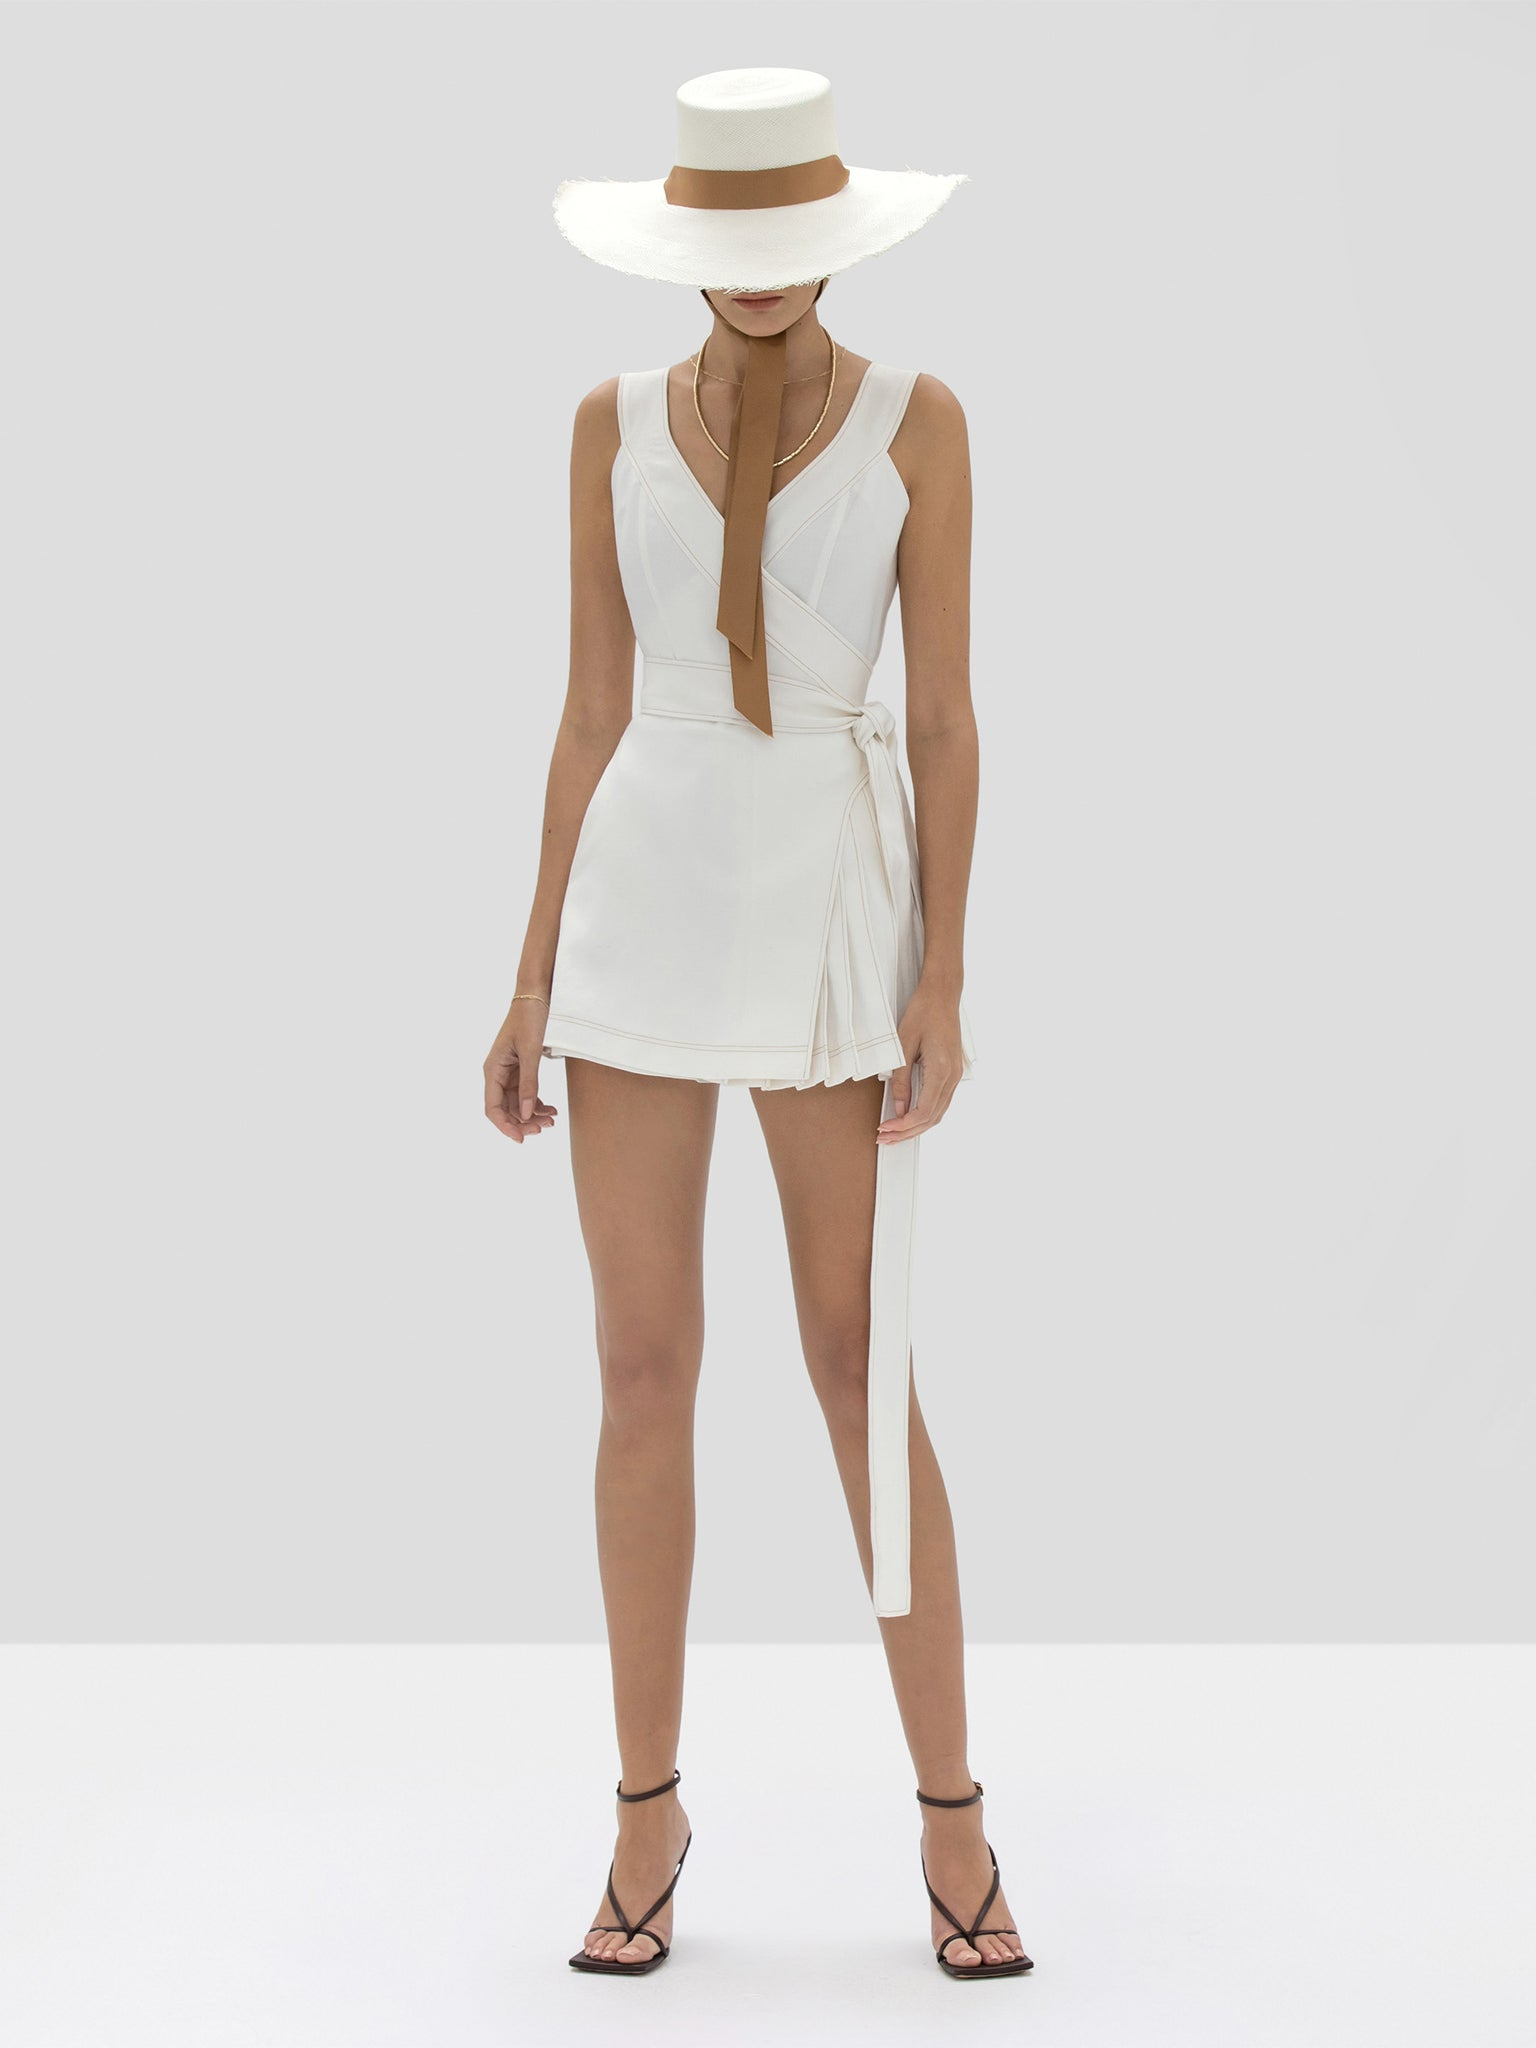 The Catia Romper in Off White from the Spring Summer 2020